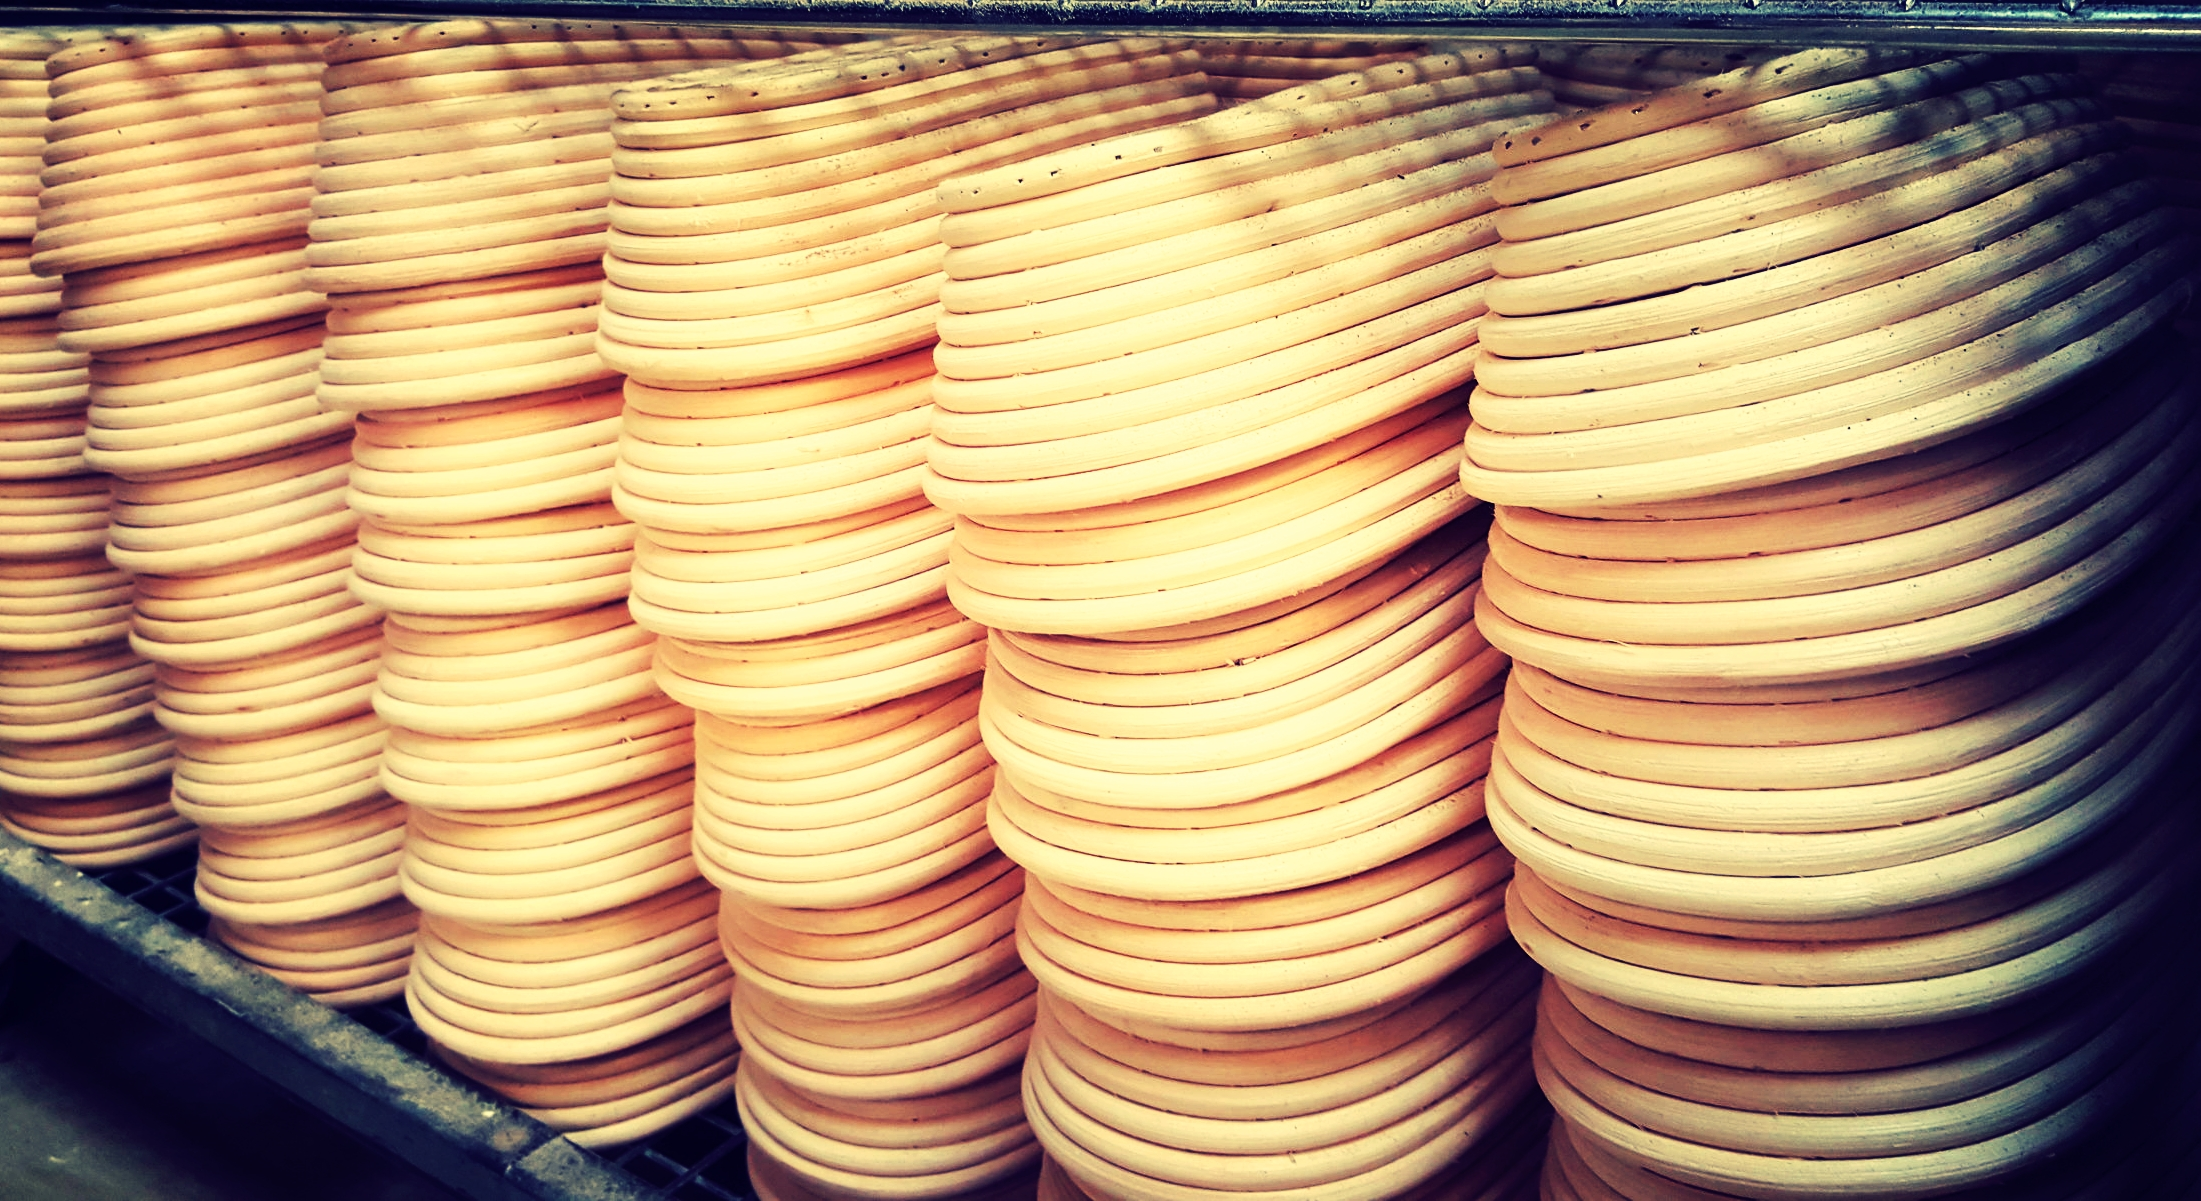 Some of our long proving baskets For sourdoughs